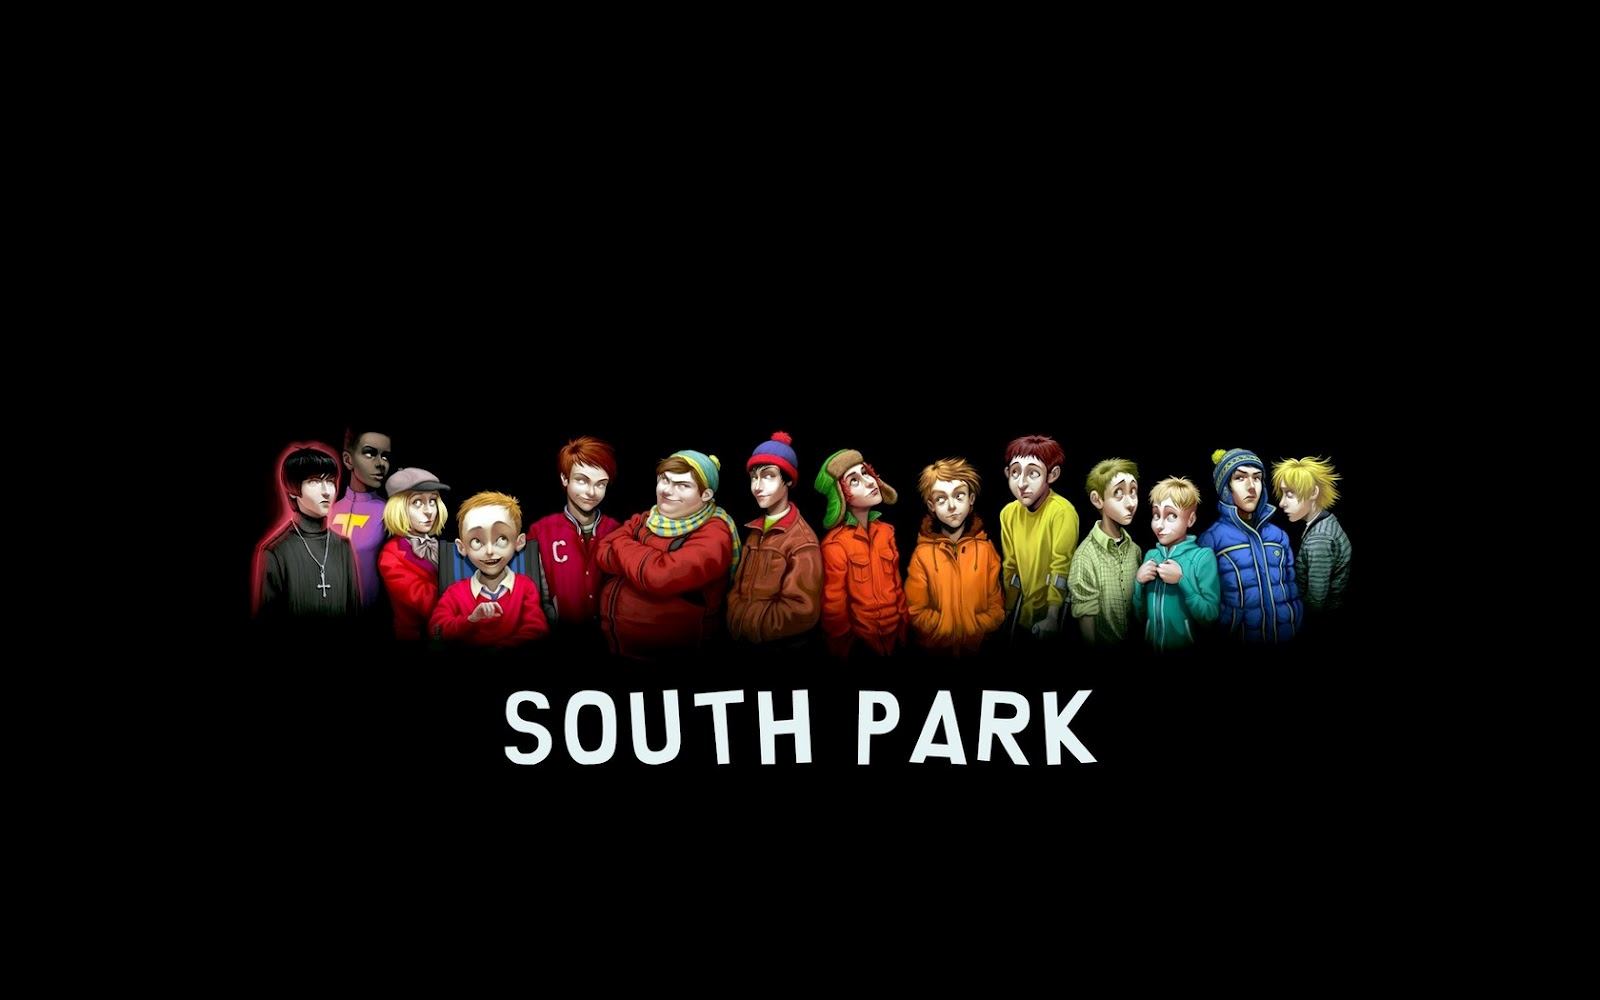 South park characters elder versions hd cartoon wallpaper